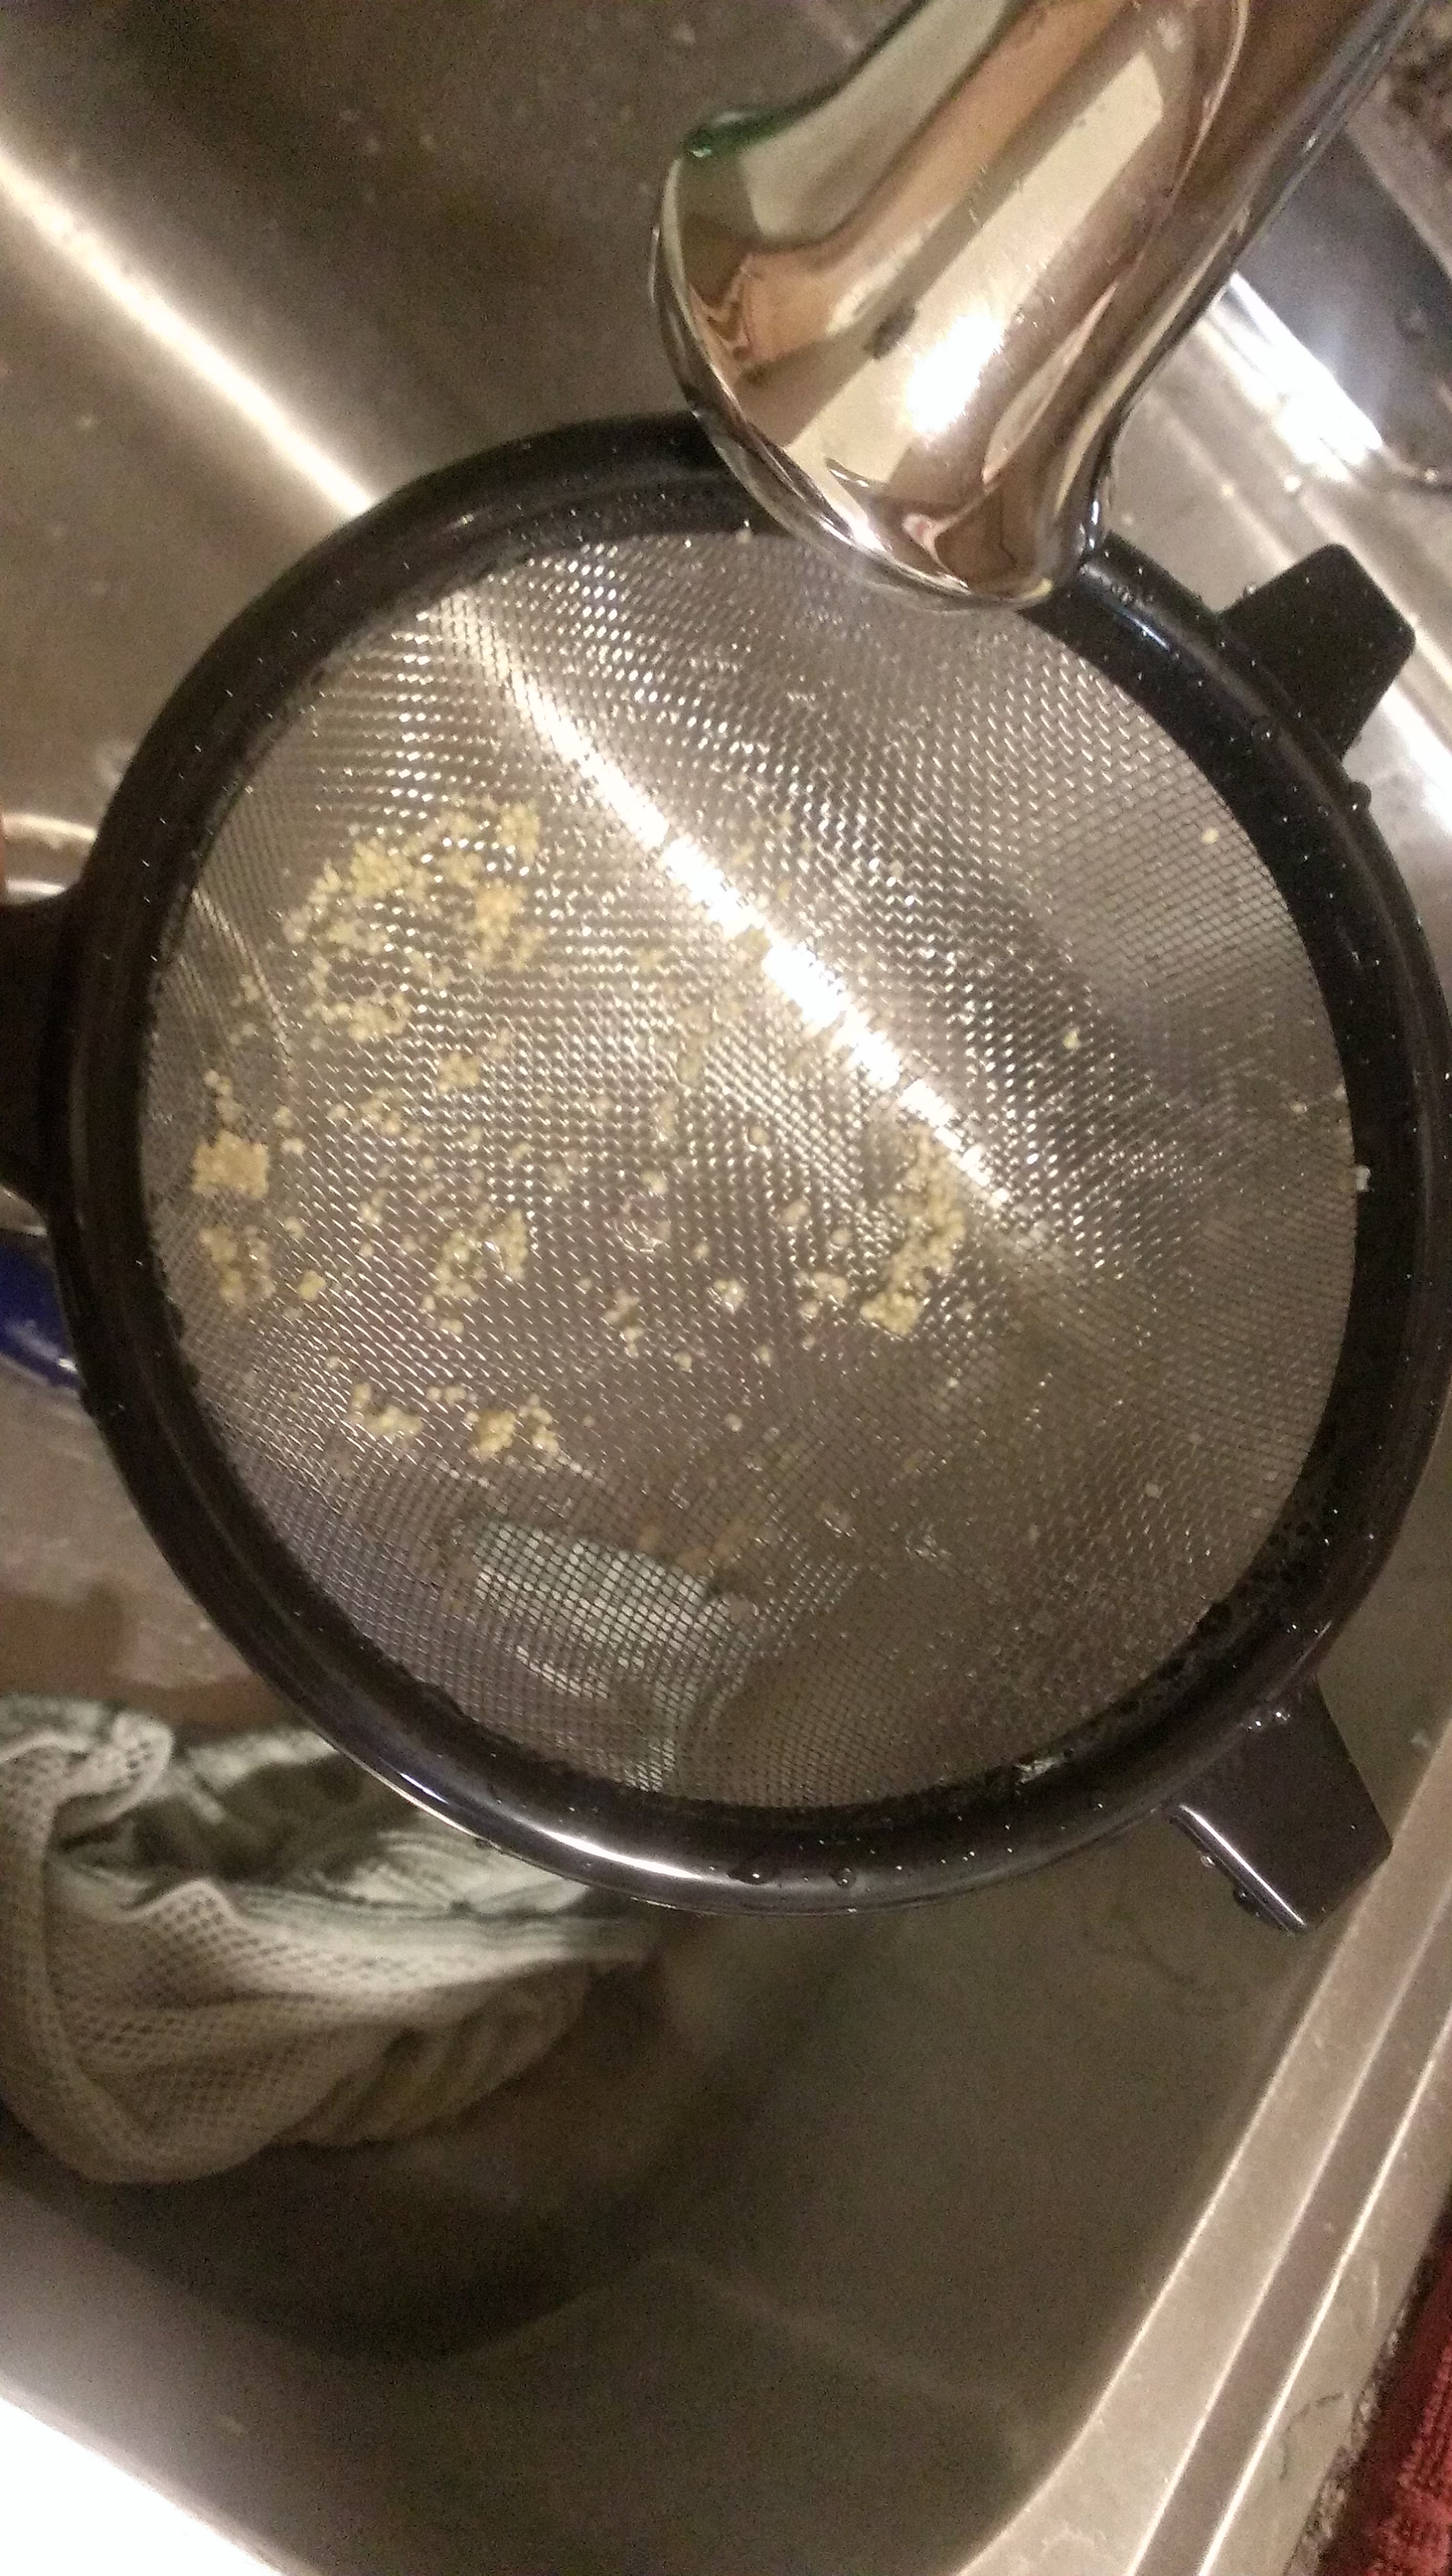 couscous strainer